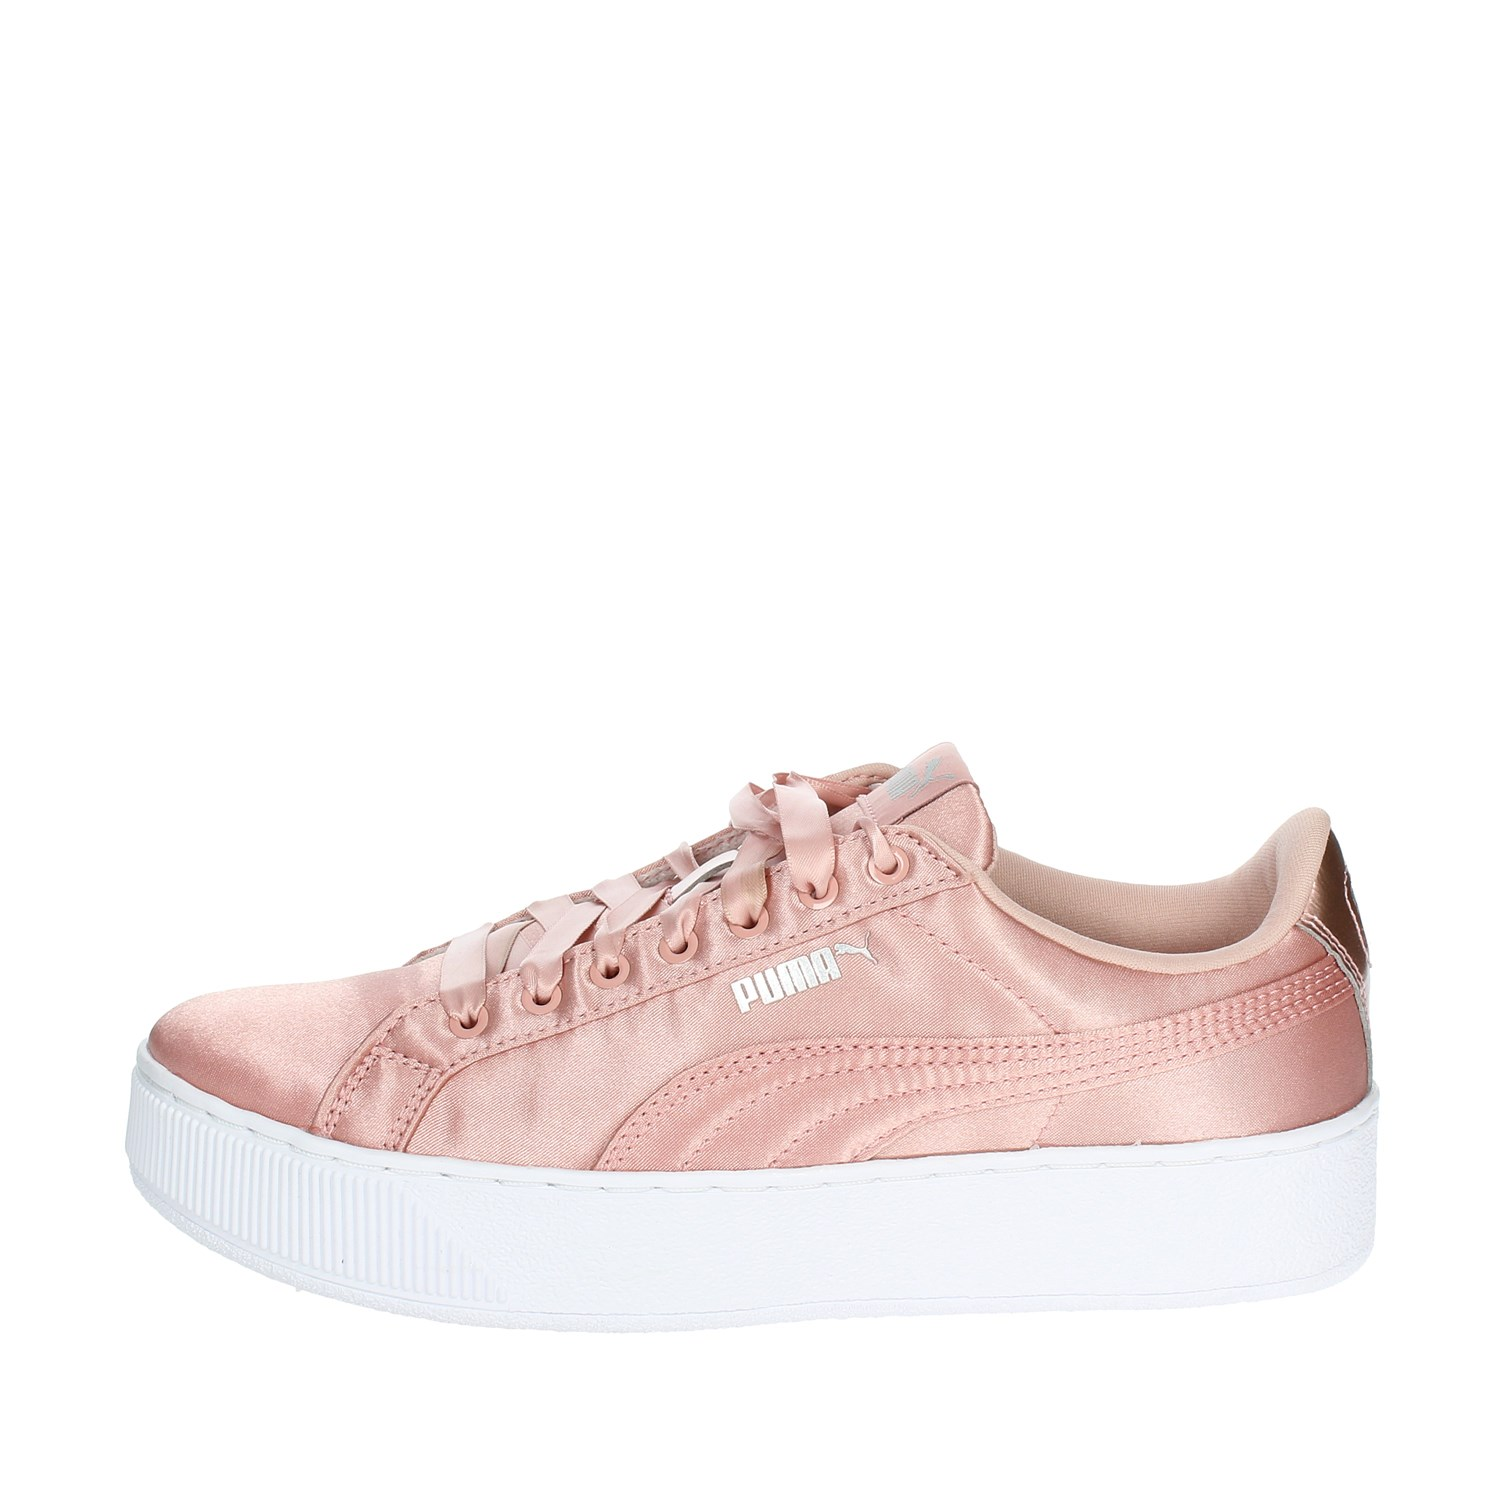 Sneakers Bassa Donna Puma 365239 01 Primavera/Estate